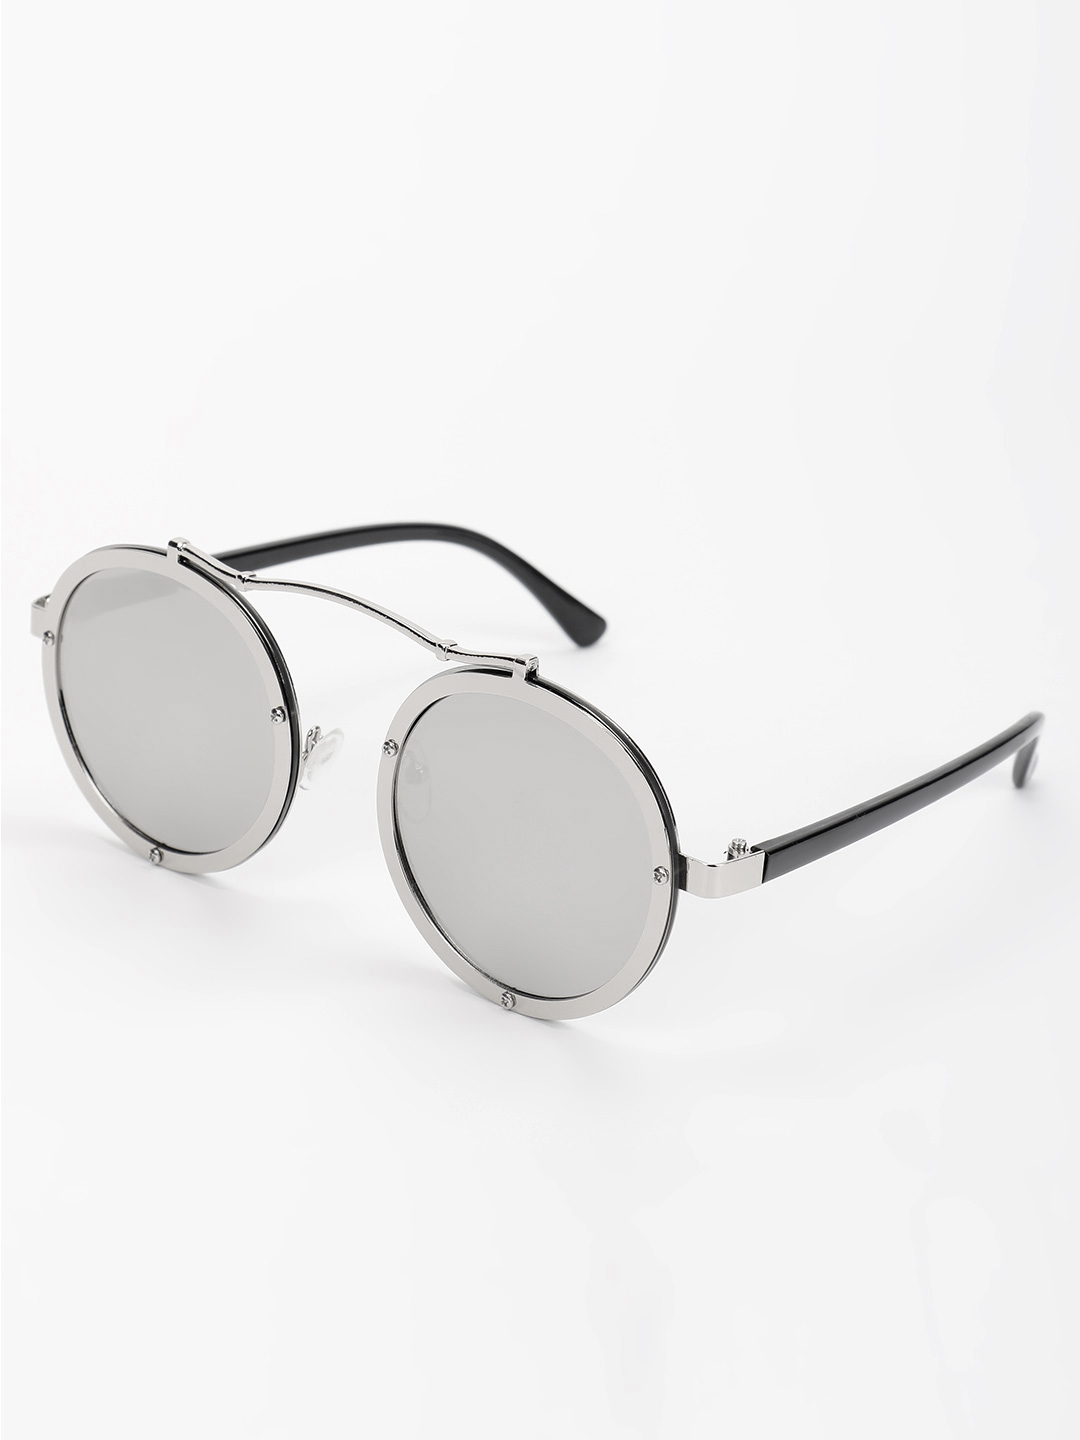 Pataaka Grey Browbar Metallic Round Sunglasses 1